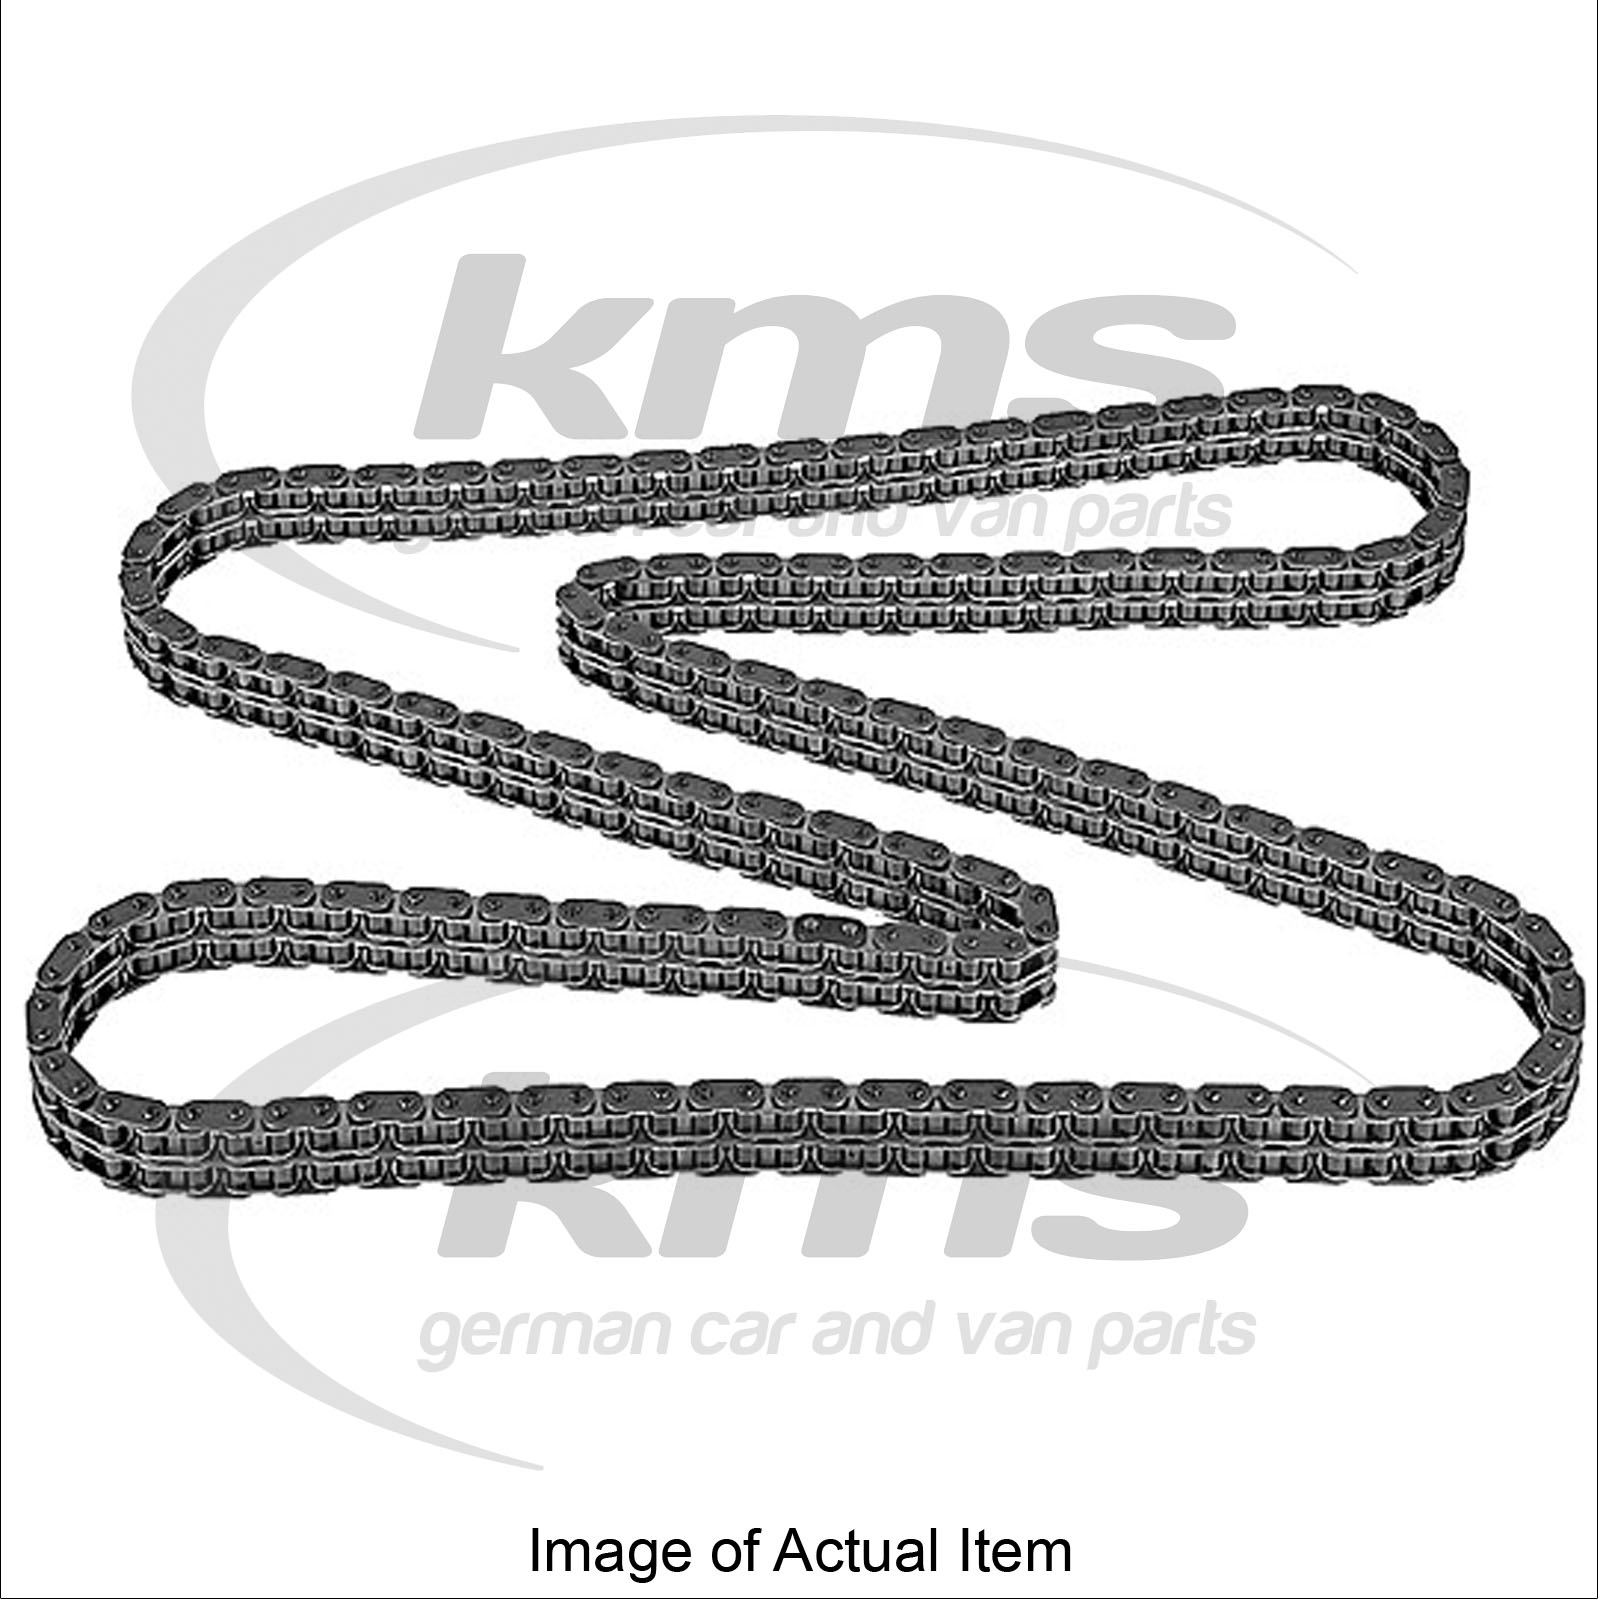 TIMING CHAIN GUIDE BMW 3 Series Hatchback 318ti Compact E46 2.0L  143